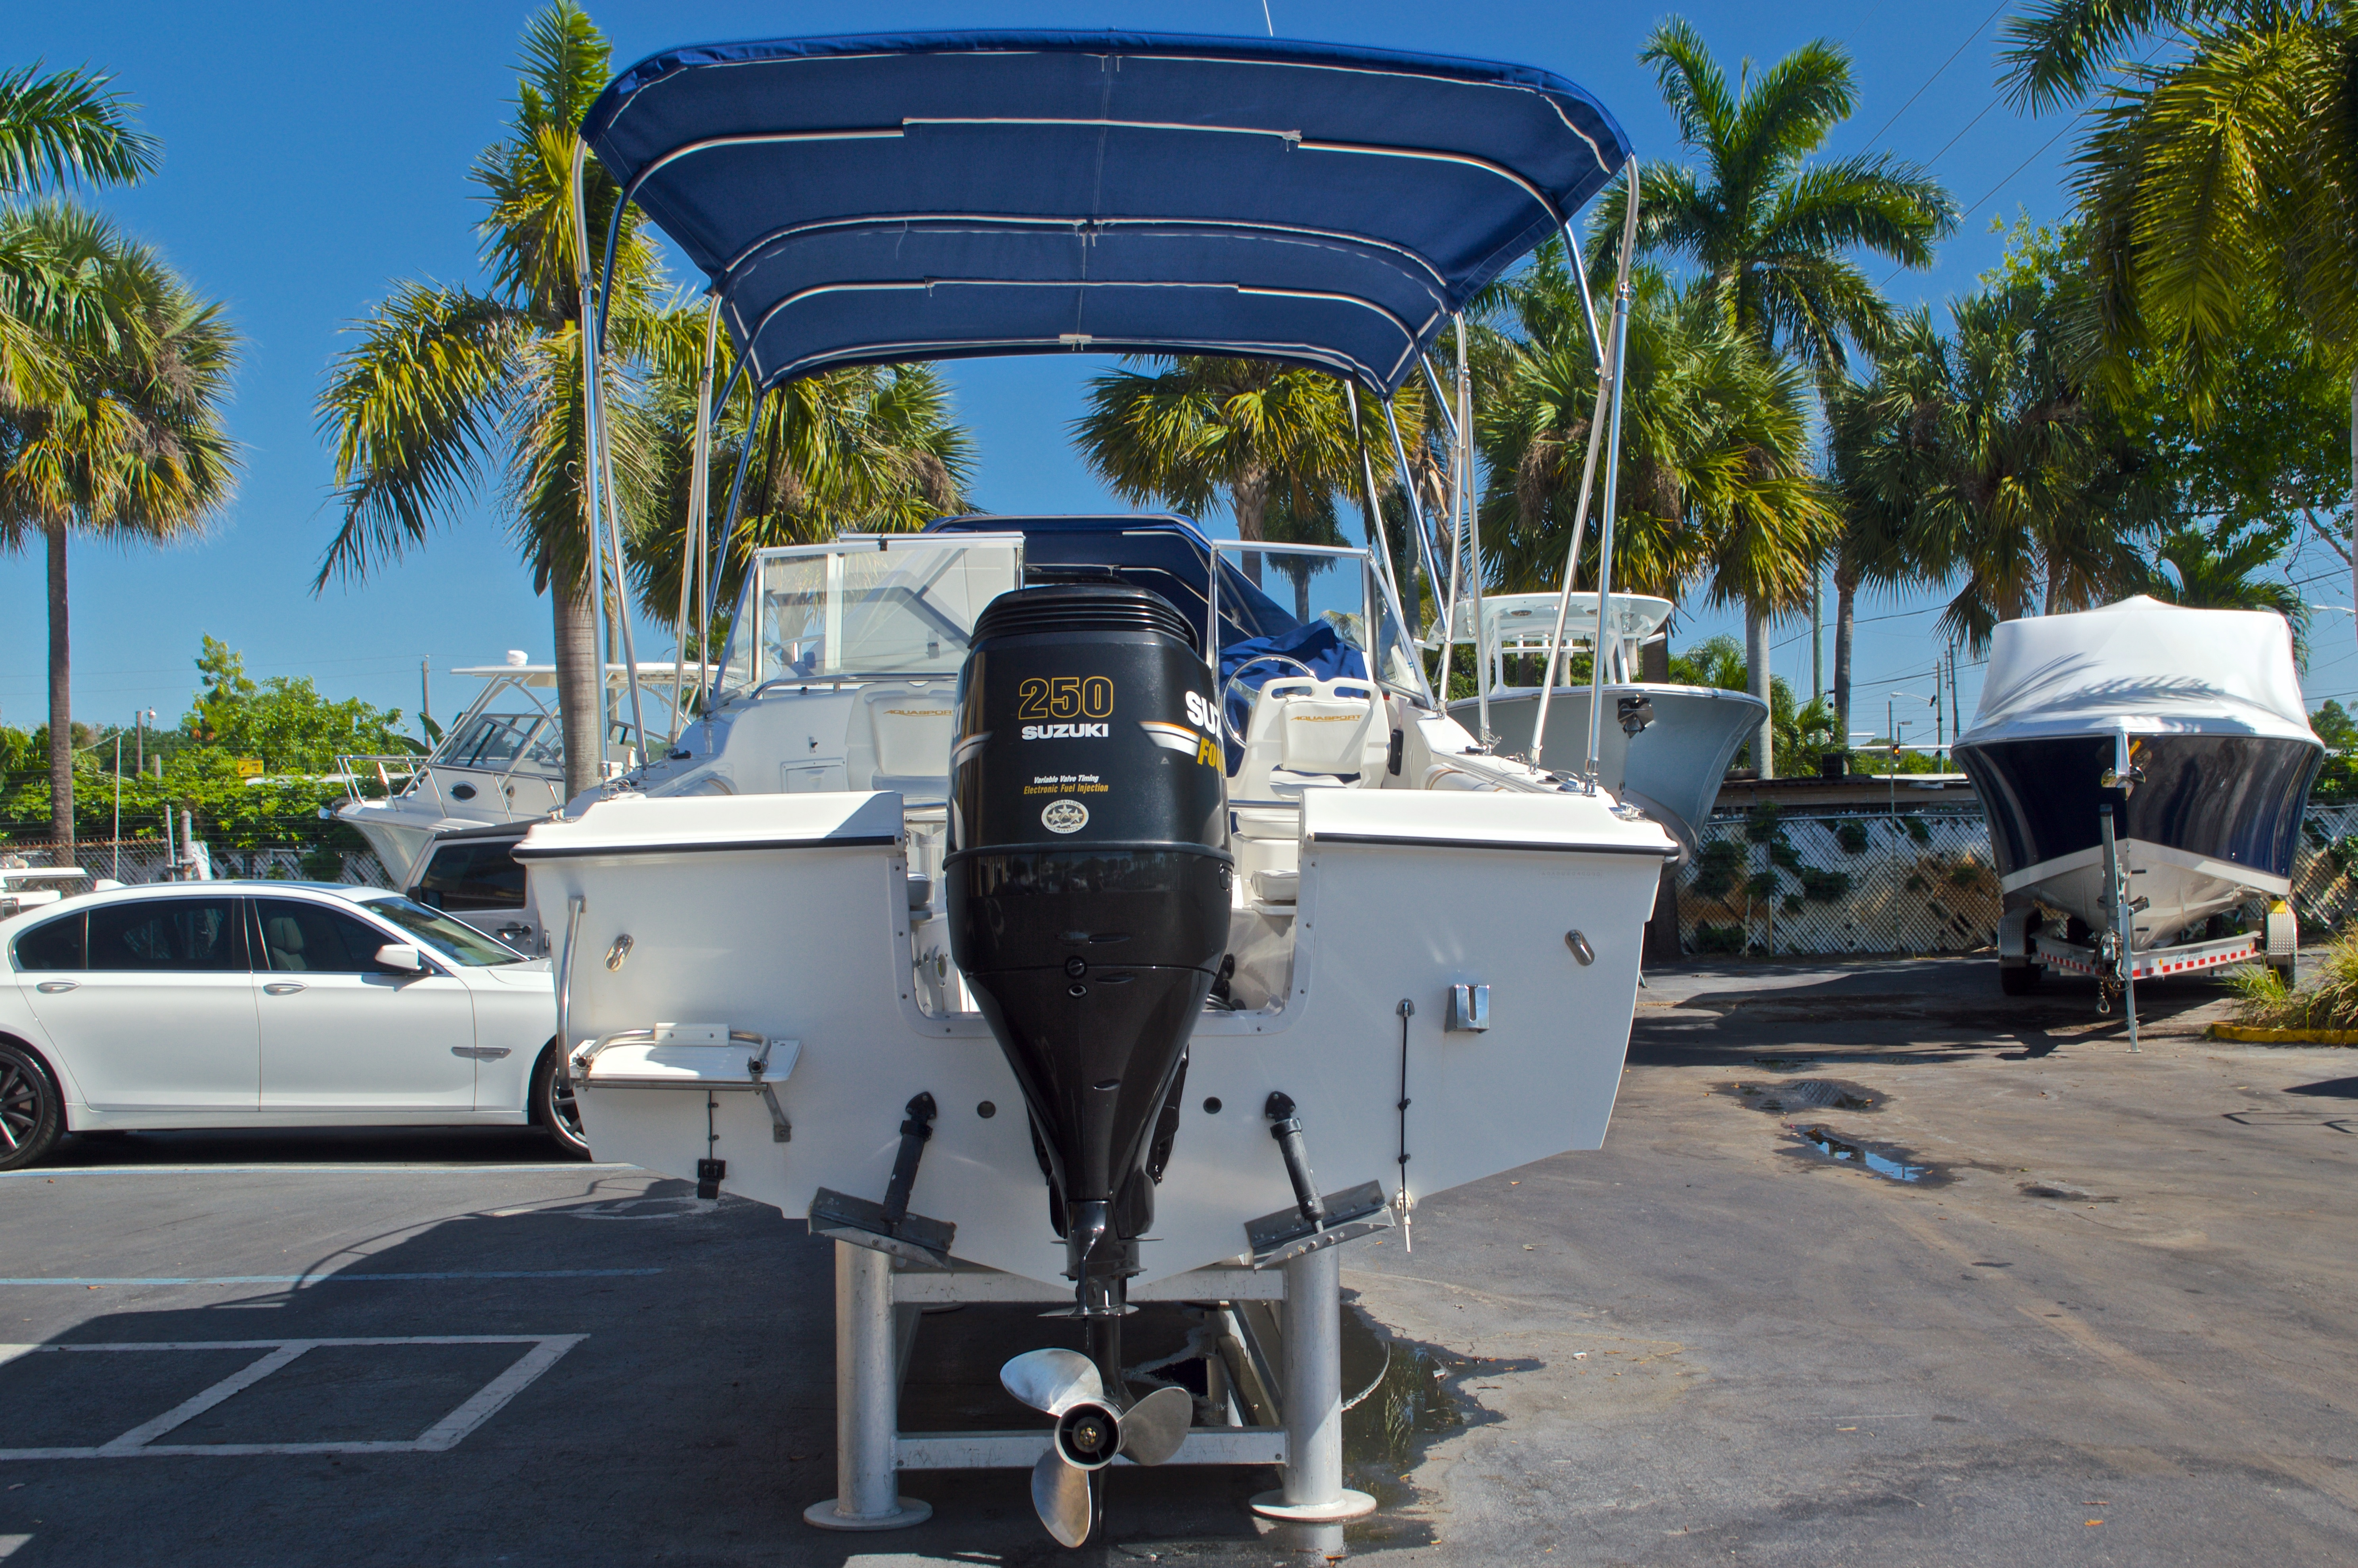 Thumbnail 6 for Used 2000 Aquasport 215 Osprey Sport DC boat for sale in West Palm Beach, FL